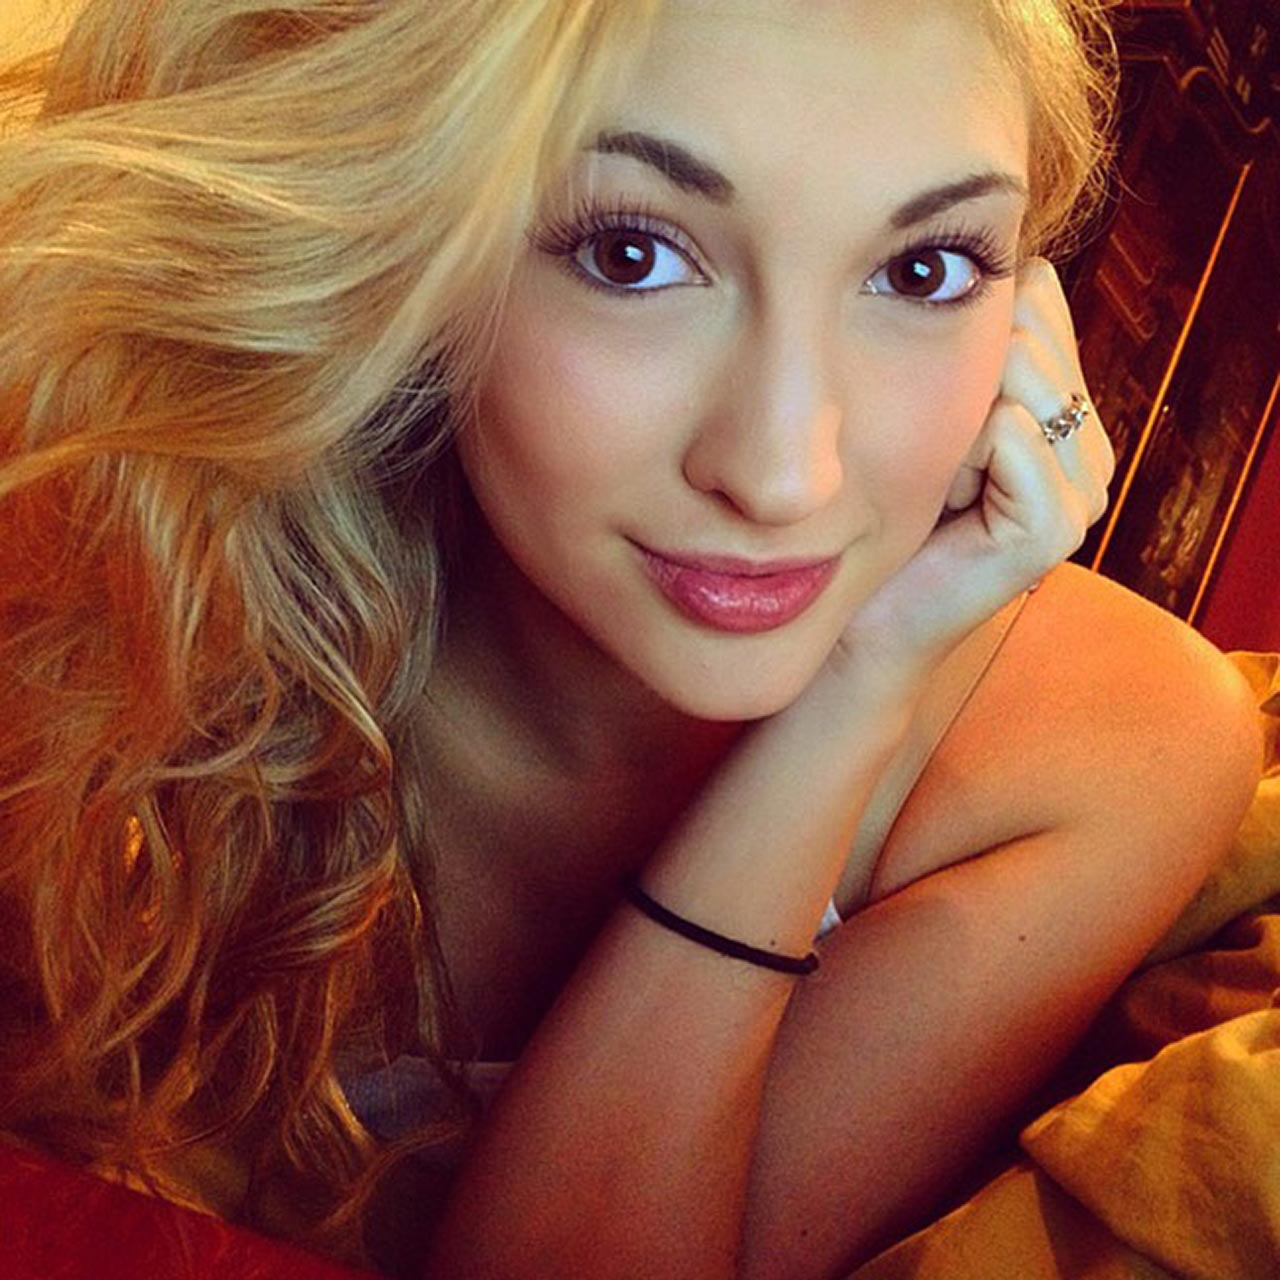 Anna faith carlson leaked